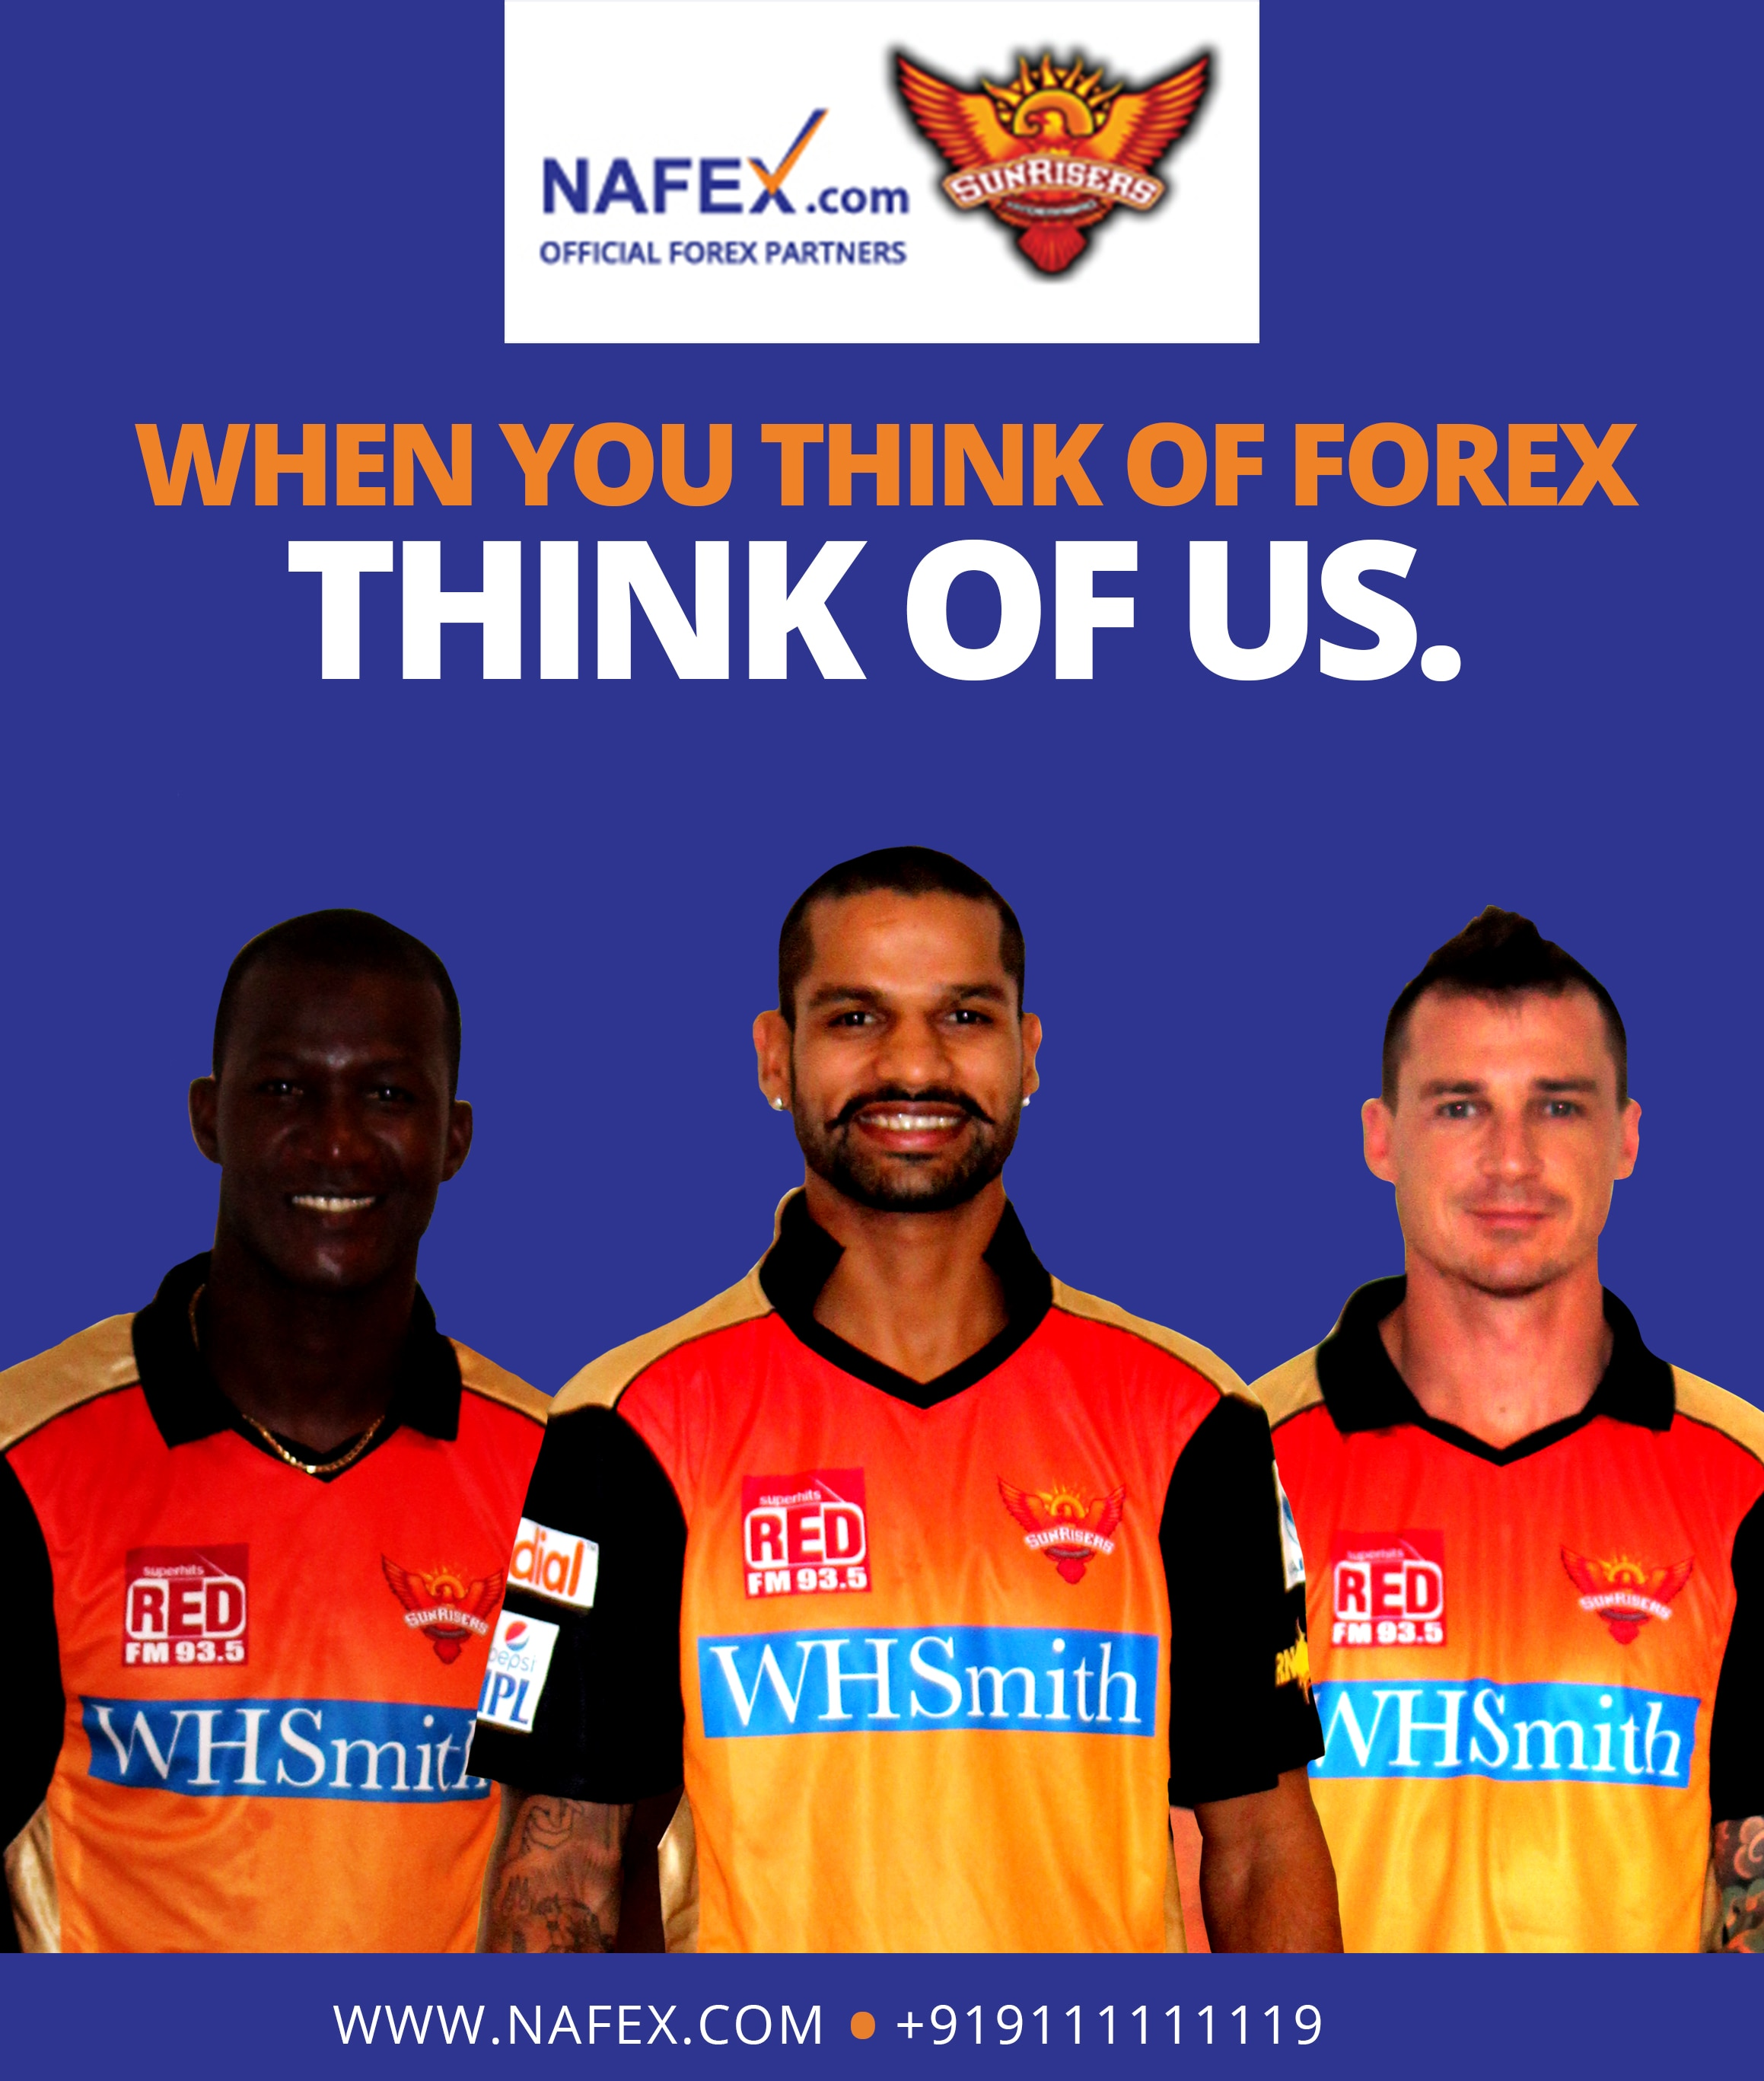 Nafex - Polytechnic Road Foreign Currency Exchange Dealers Agents Polytechnic Road, Online Travellers Cheque & Forex Prepaid Card